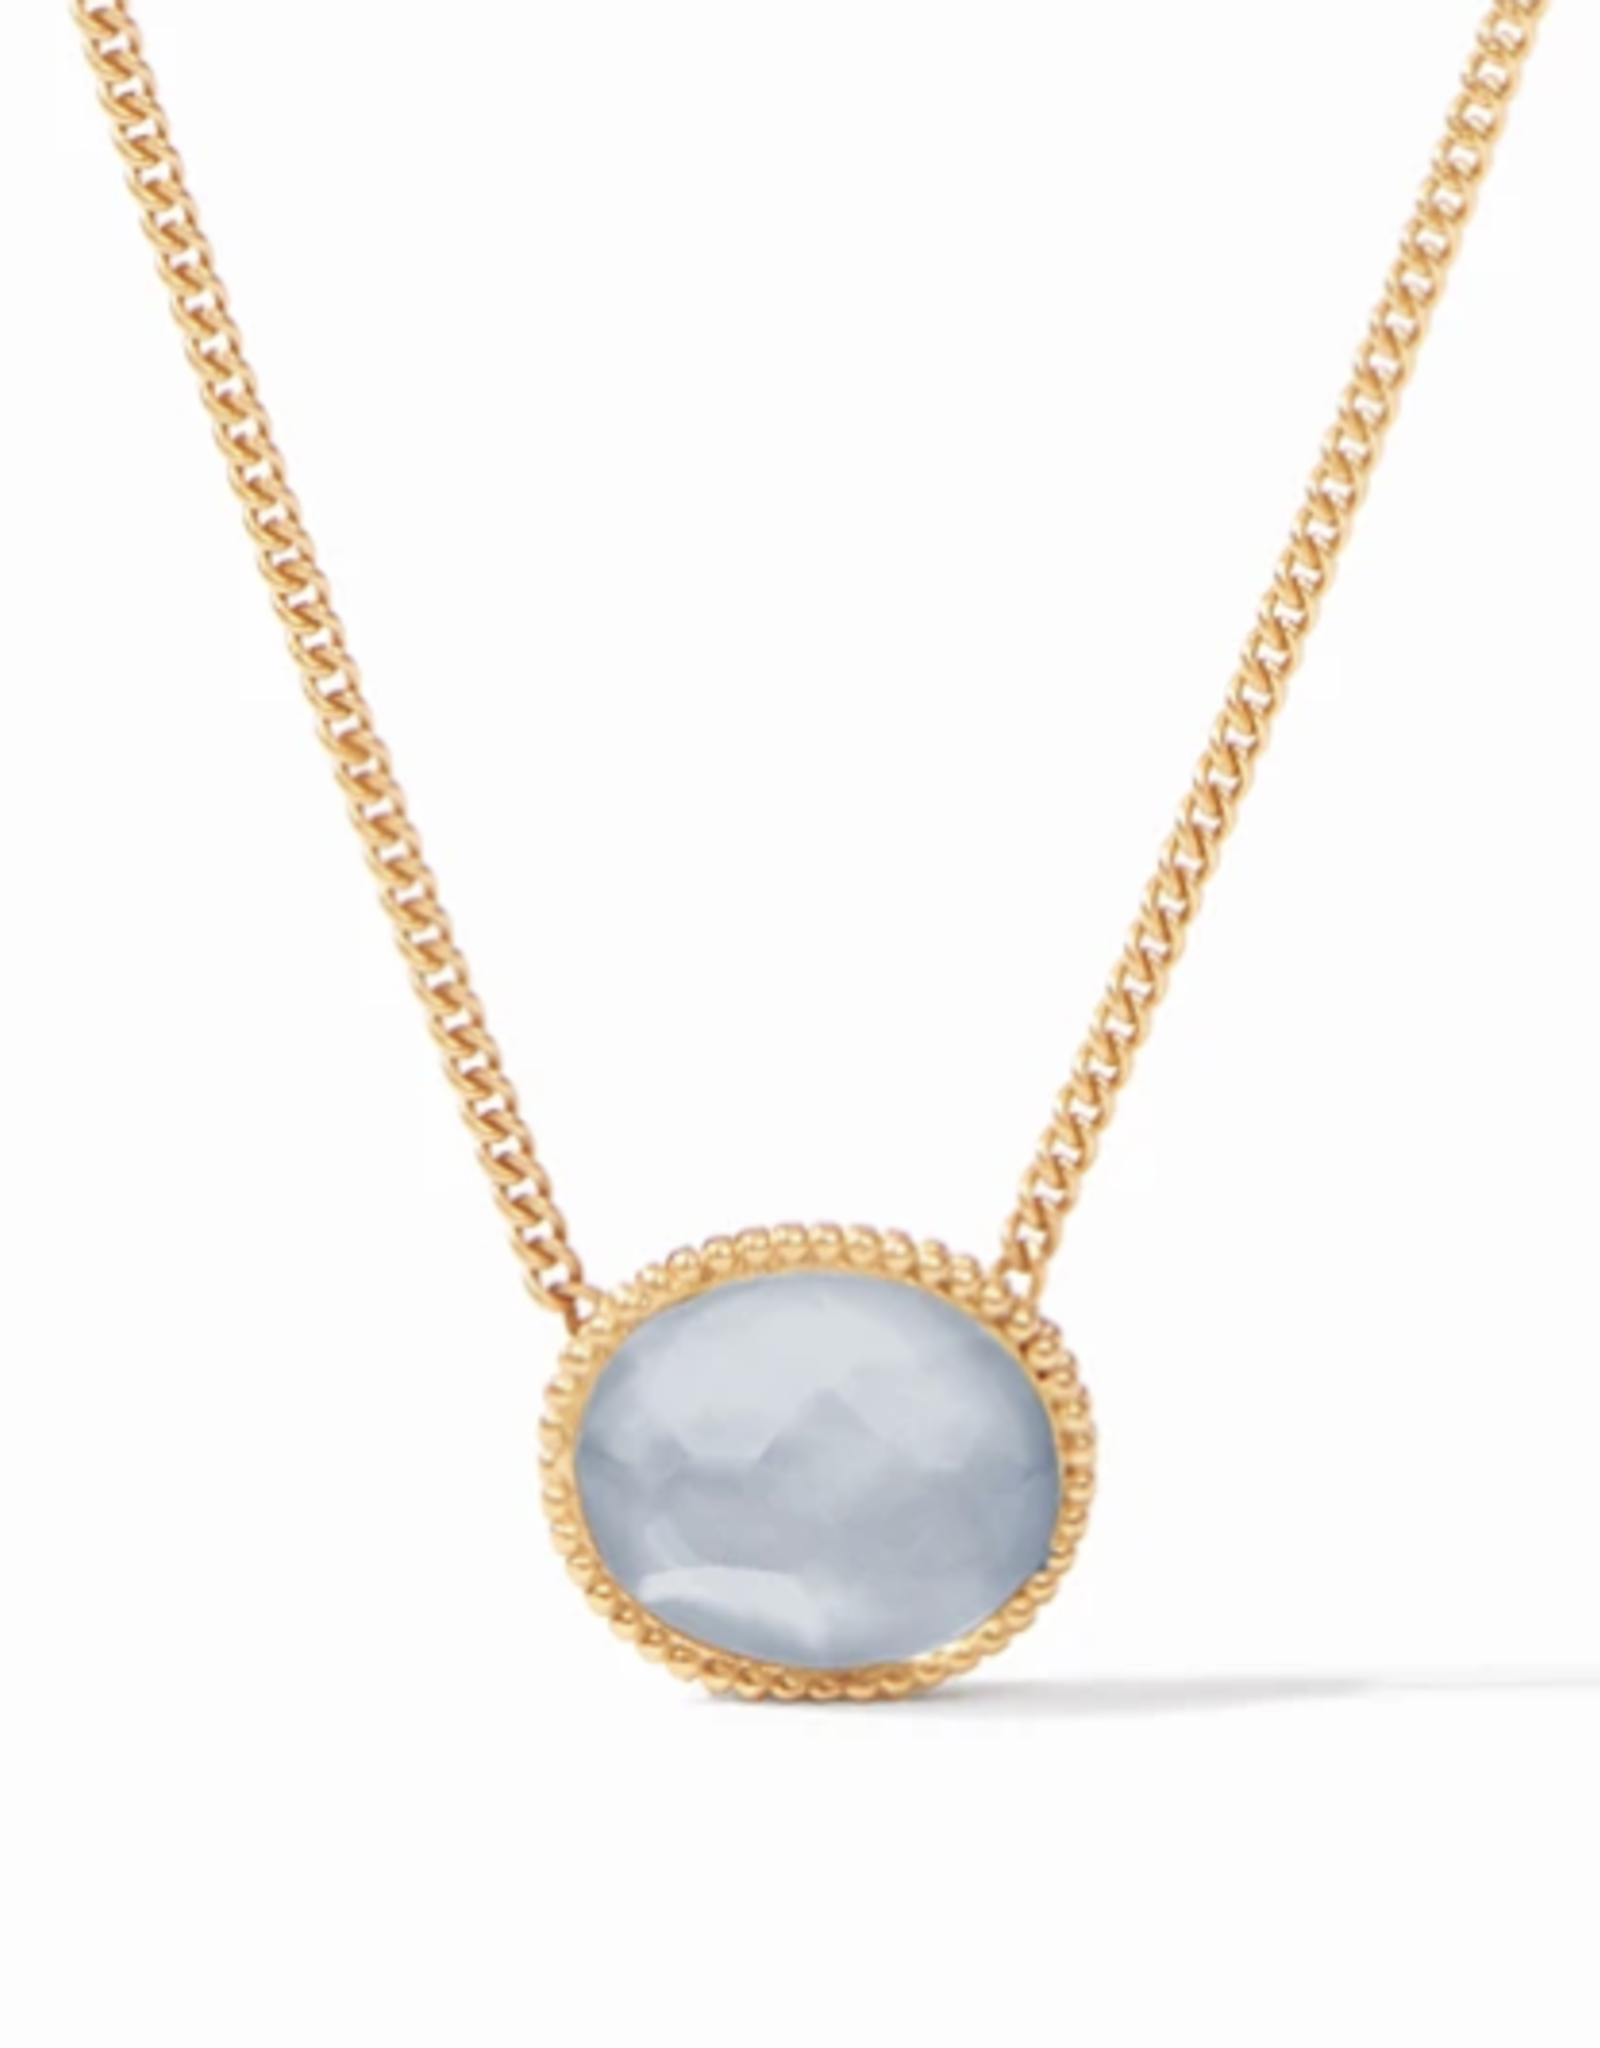 Julie Vos Verona Solitaire Necklace Iridescent Chalcedony Blue